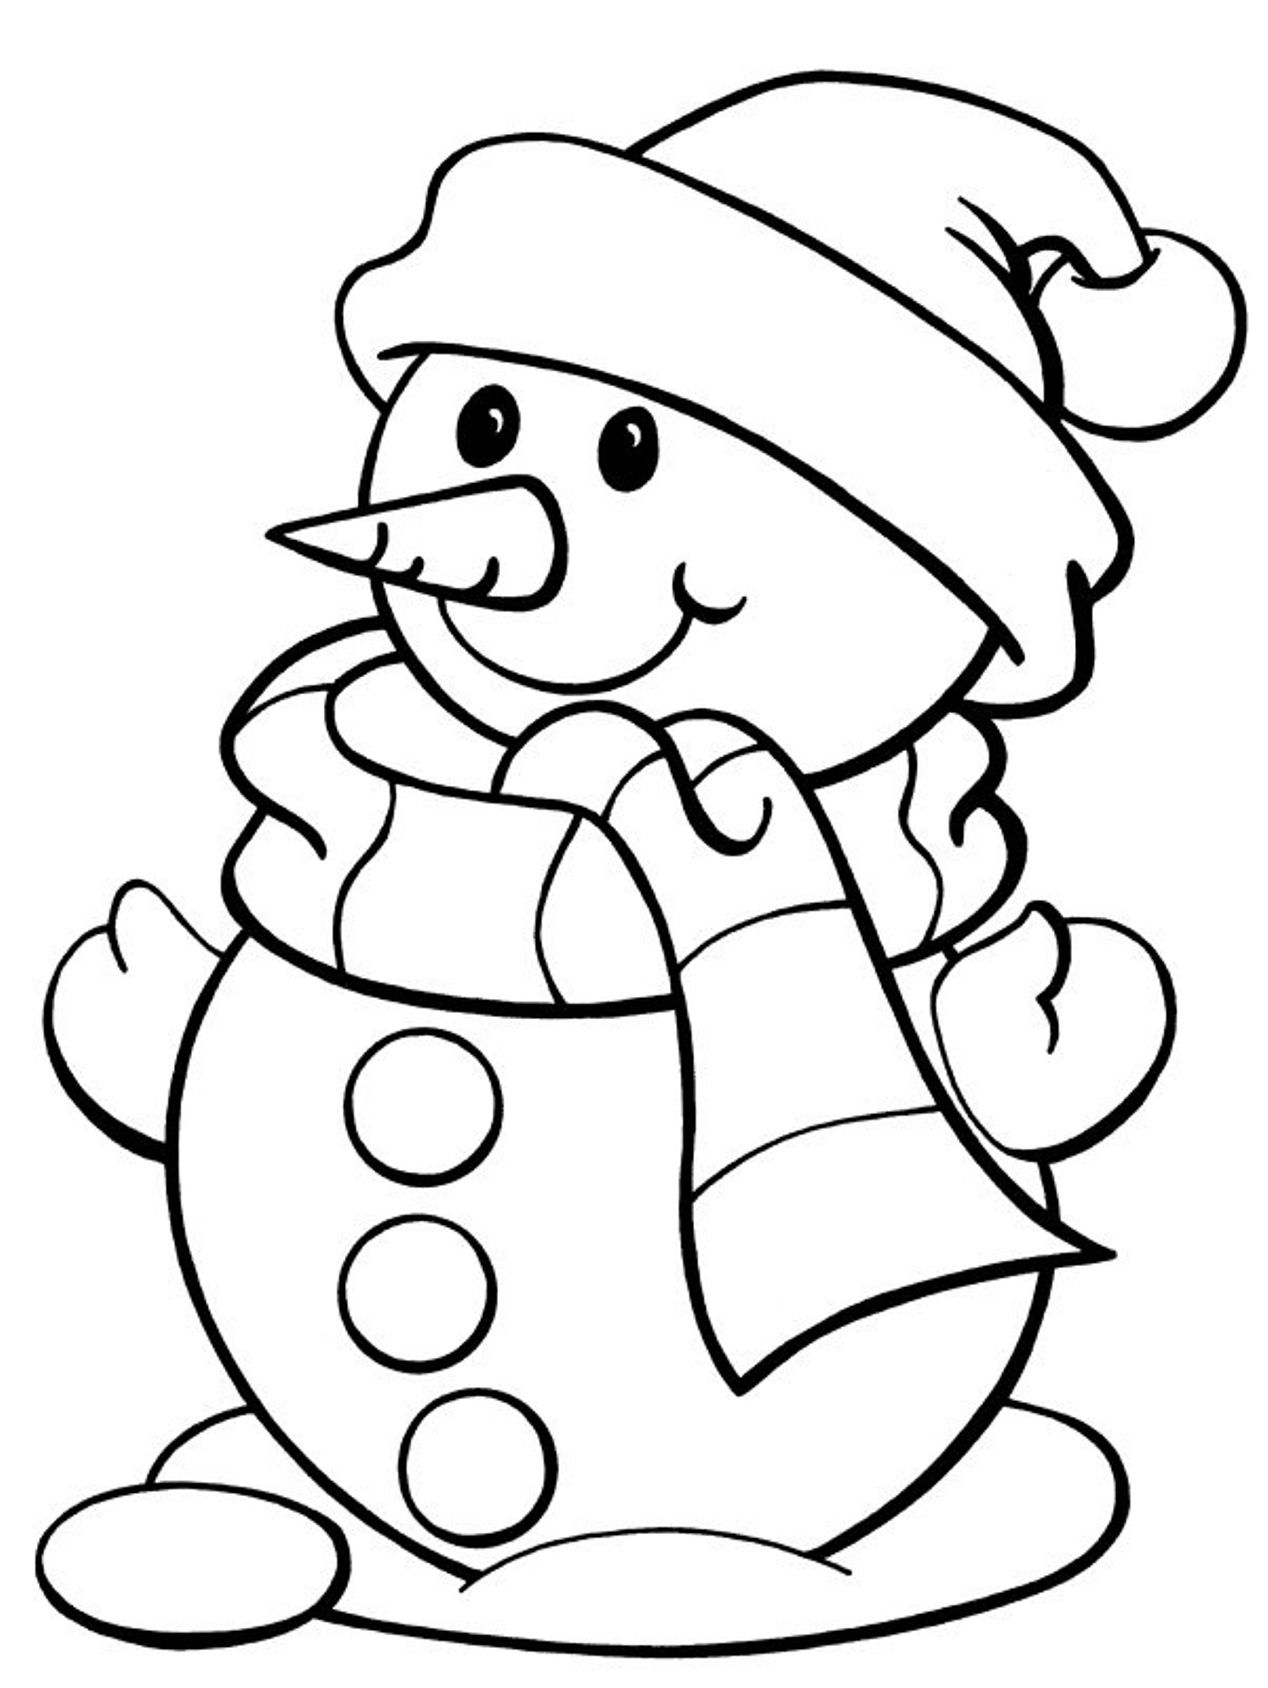 Winter Coloring, Snowman Coloring Pages Winter Free: Snowman ...